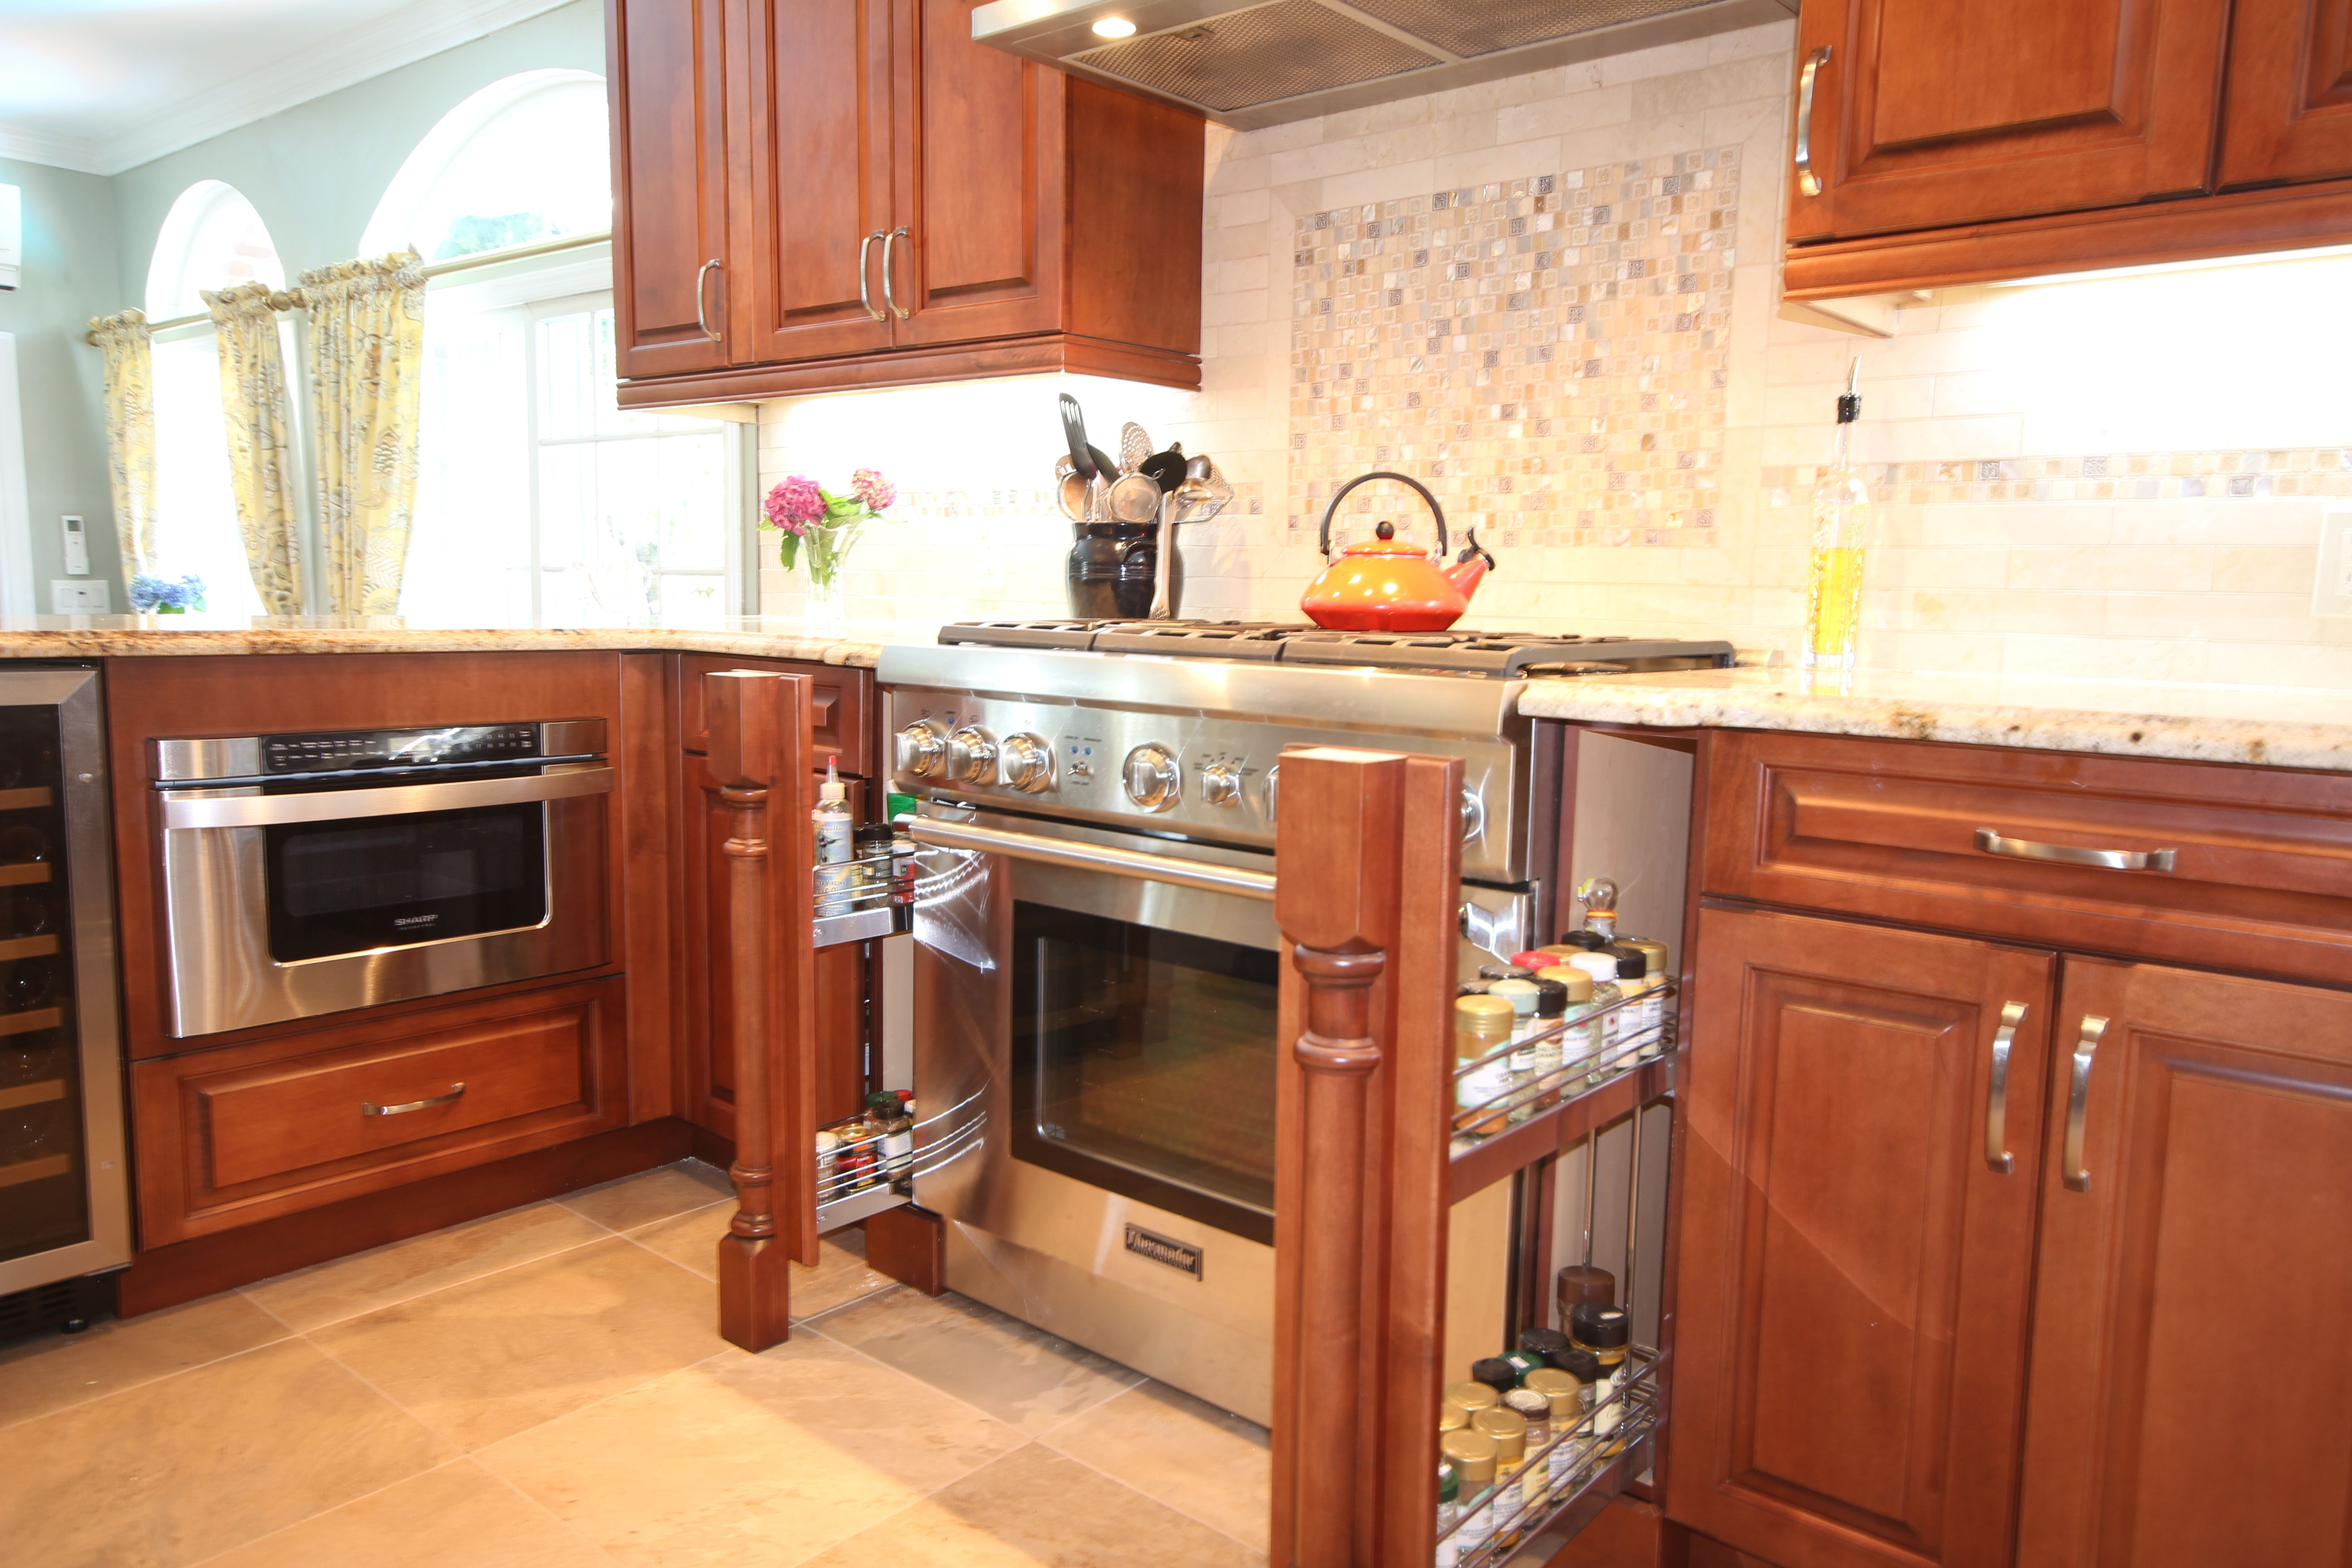 The perfect solution to the awkward space that is sometimes left over when having to fit cabinetry and appliances together. The disappearing spice racks are functional , out of the way , and big enough so you can find almost anything you might need to flavor your cooking